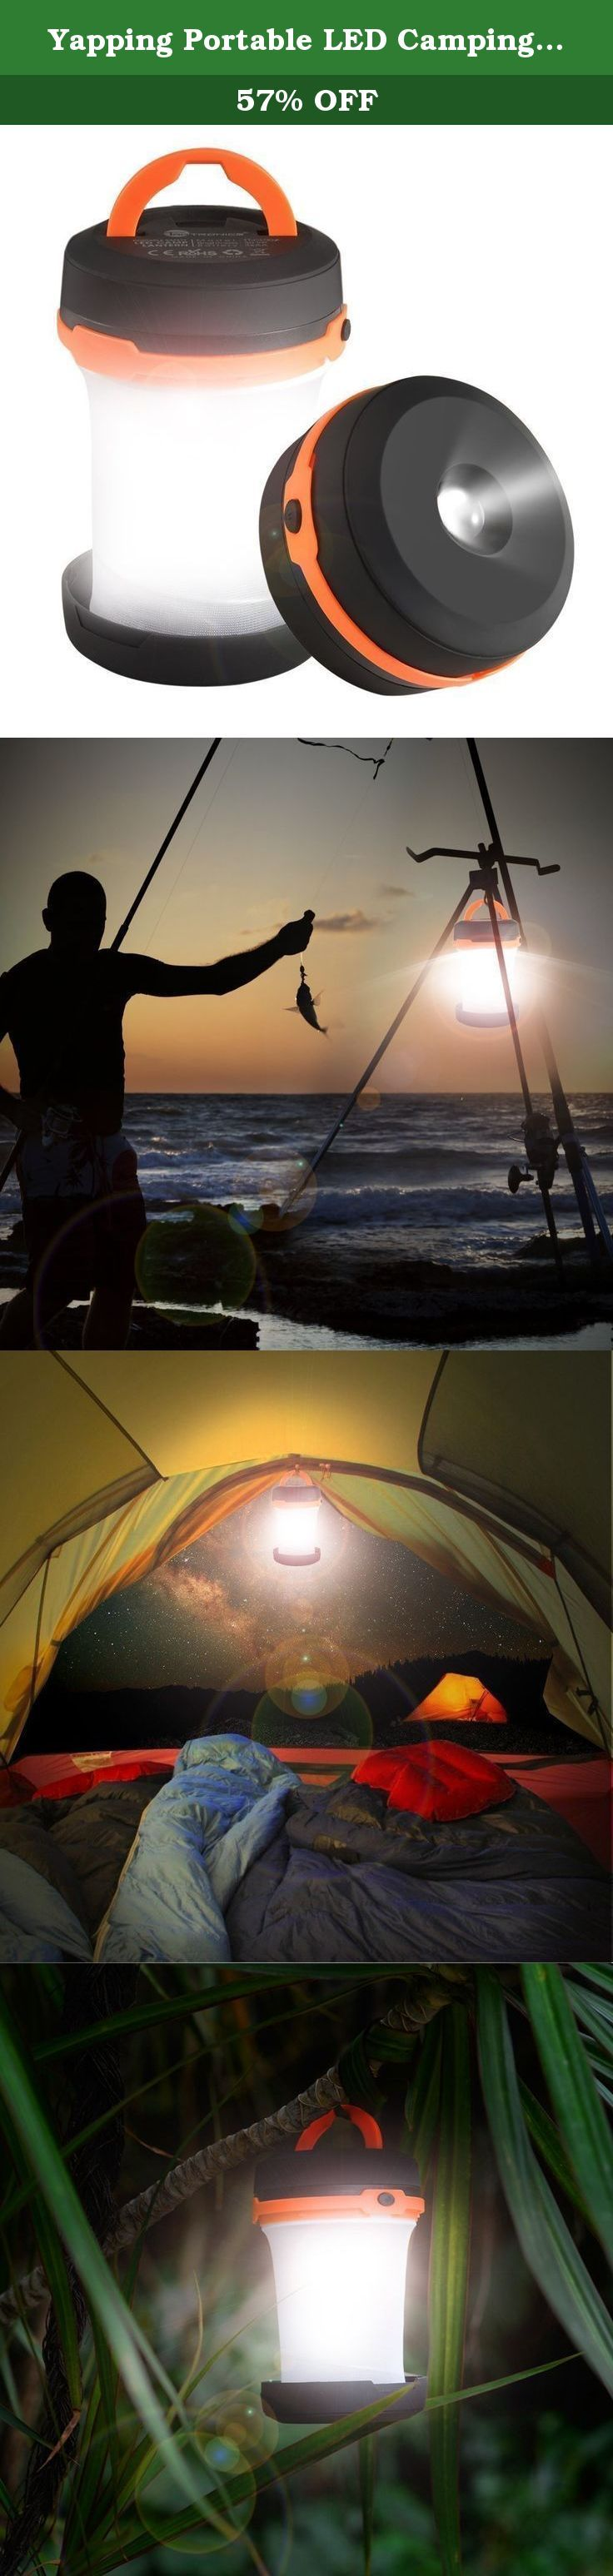 Yapping Portable LED Camping Lamp Mini Flashlight Torch Light Tent Lamp Battery Operated for Camping Hiking Home Emergencies orange. The lantern is suitable for indoors and outdoors,Hiking,Camping,Emergencies,Hurricanes,Outages,Home,office,etc. Why choose us about the lantern? 1.Light But Durable,Easy to Carry The last thing you need is another gadget slowing you down. Our product weights just 109g and can be collapsed to half of its length into a convenient to carry puck-like shape. The...